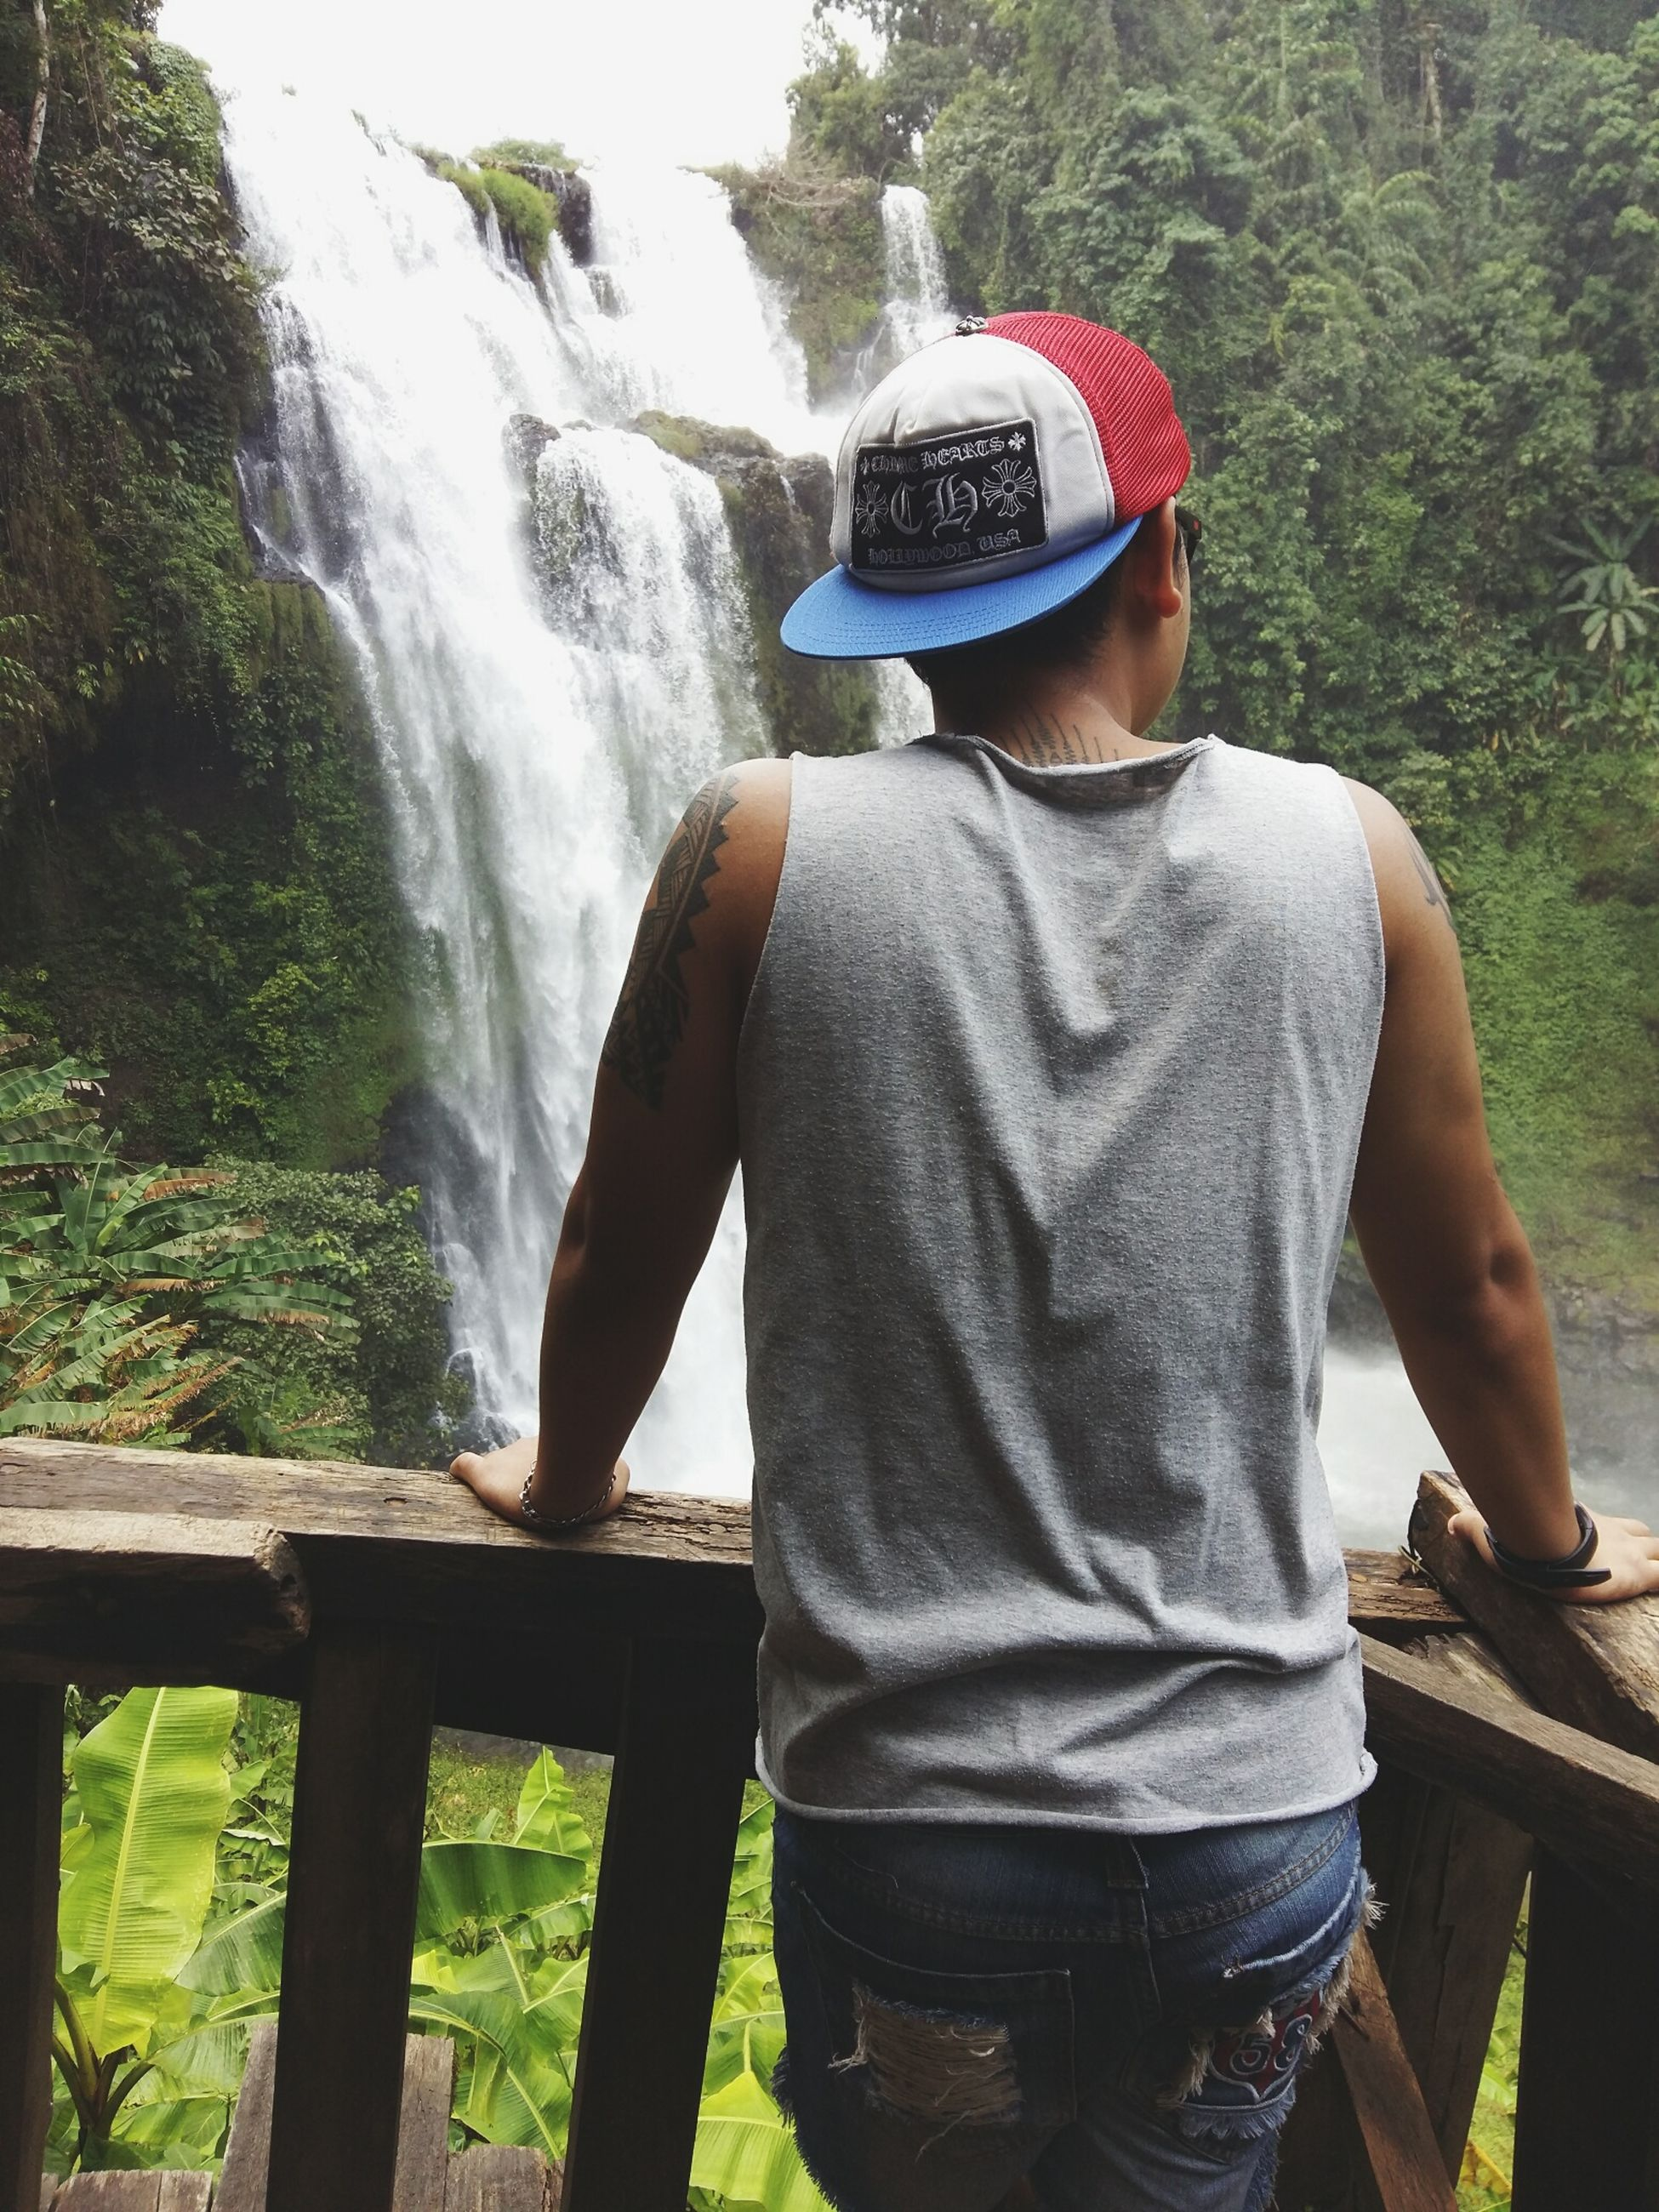 lifestyles, leisure activity, casual clothing, rear view, standing, water, waterfall, men, three quarter length, mountain, day, rock - object, nature, outdoors, flowing water, tree, motion, flowing